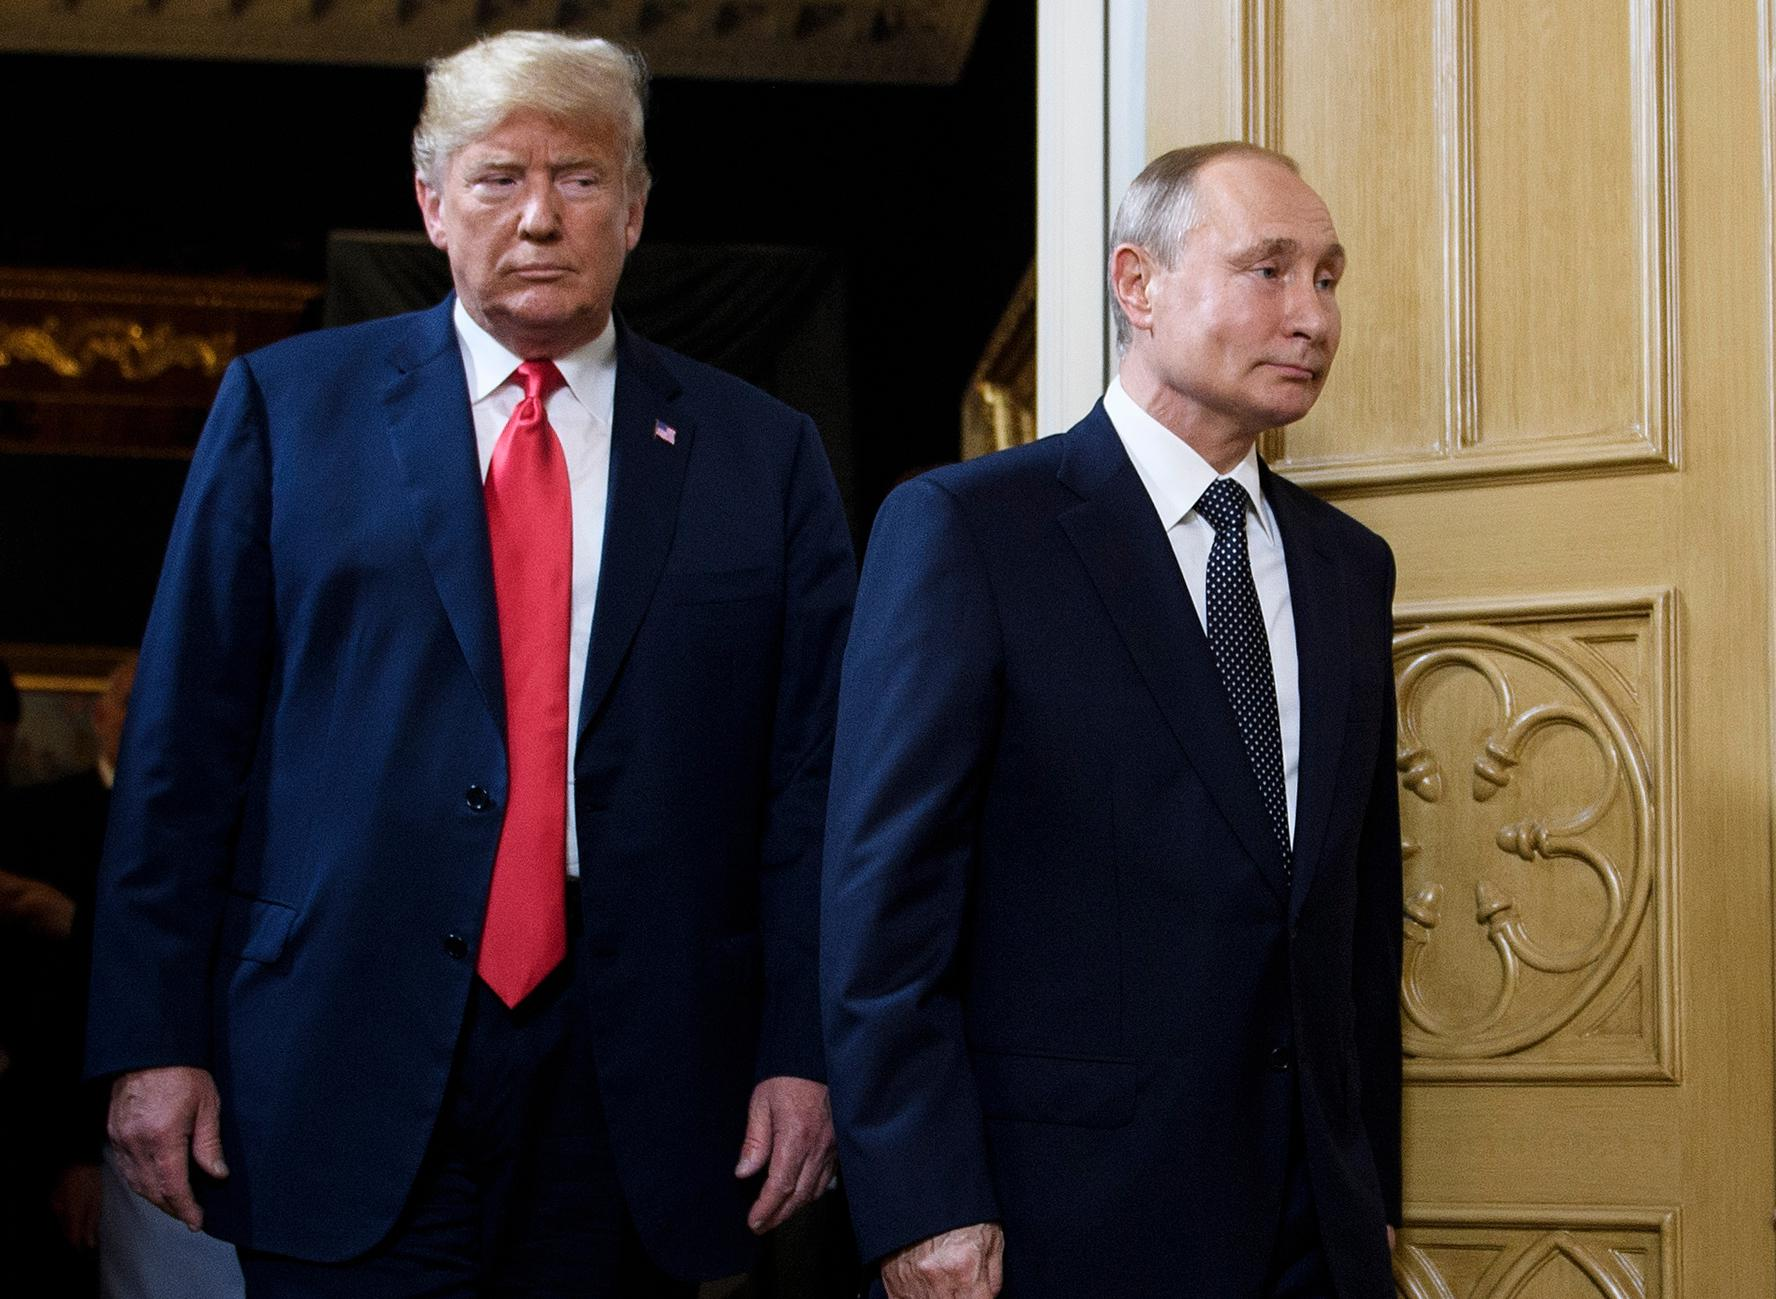 President Donald Trump and Russian President Vladimir Putin arrive for a meeting in Helsinki, on July 16, 2018.